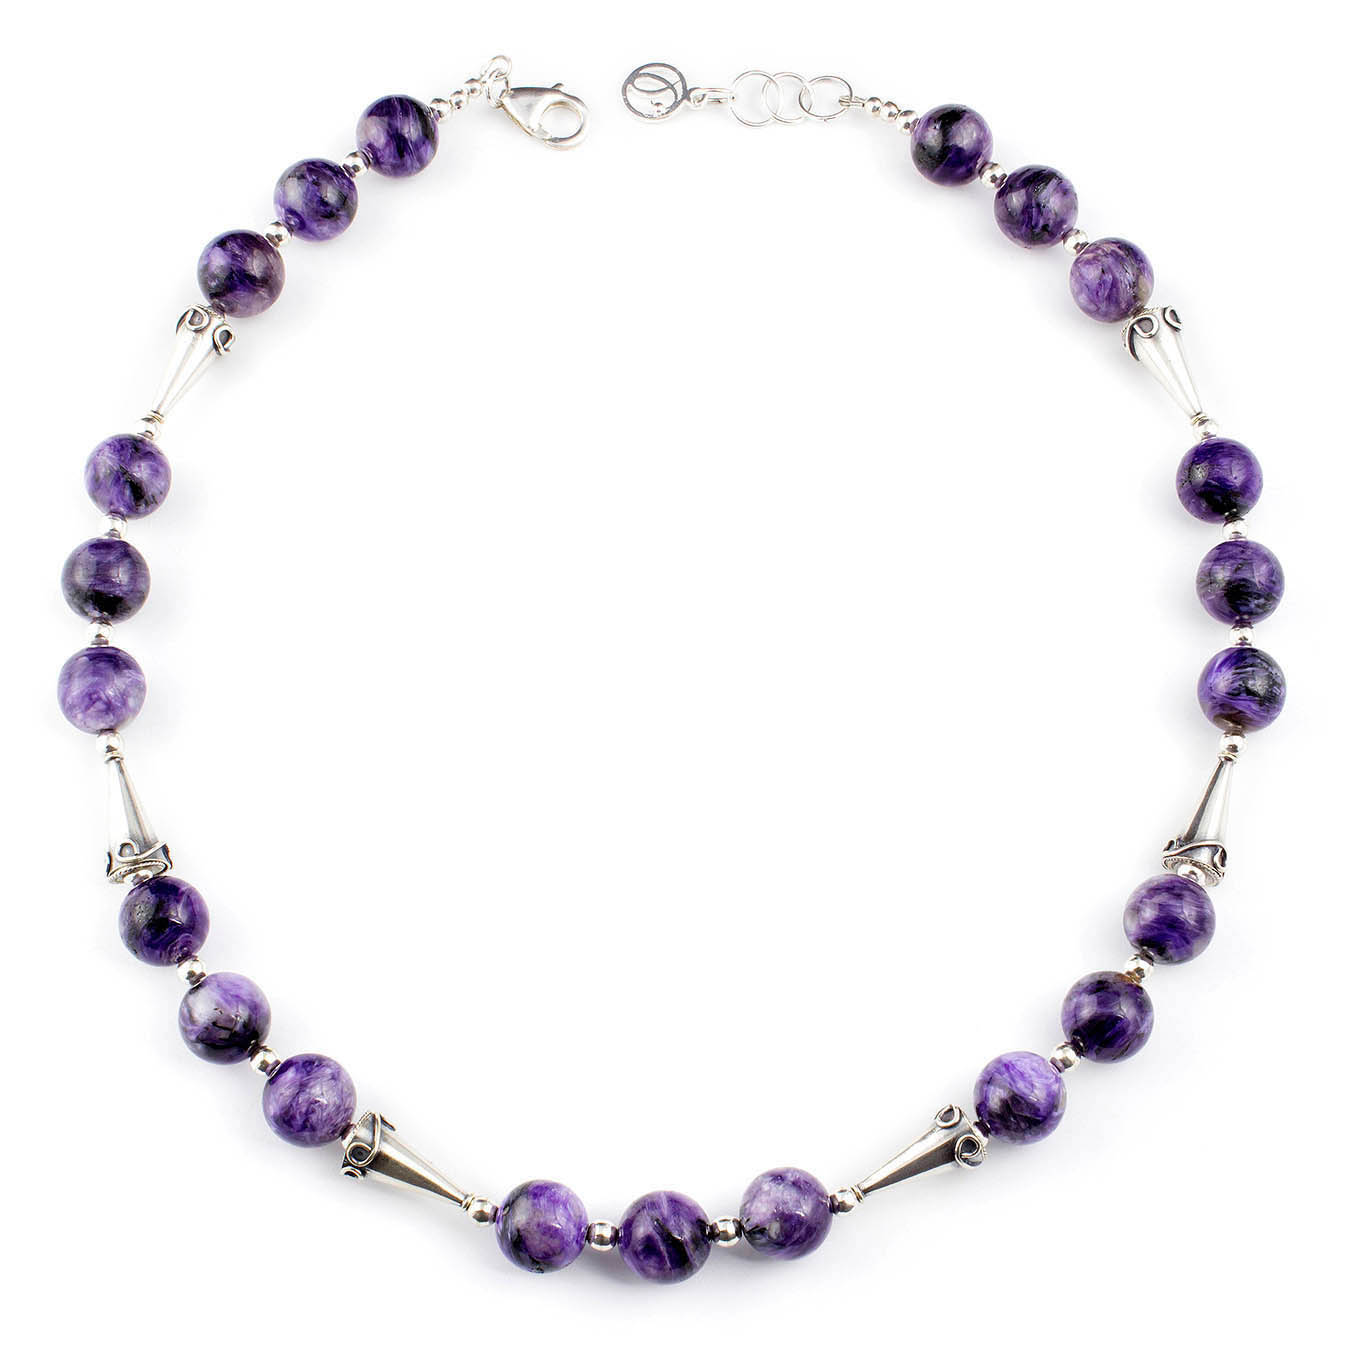 Stone beaded jewelry necklace made with purple charoite and silver